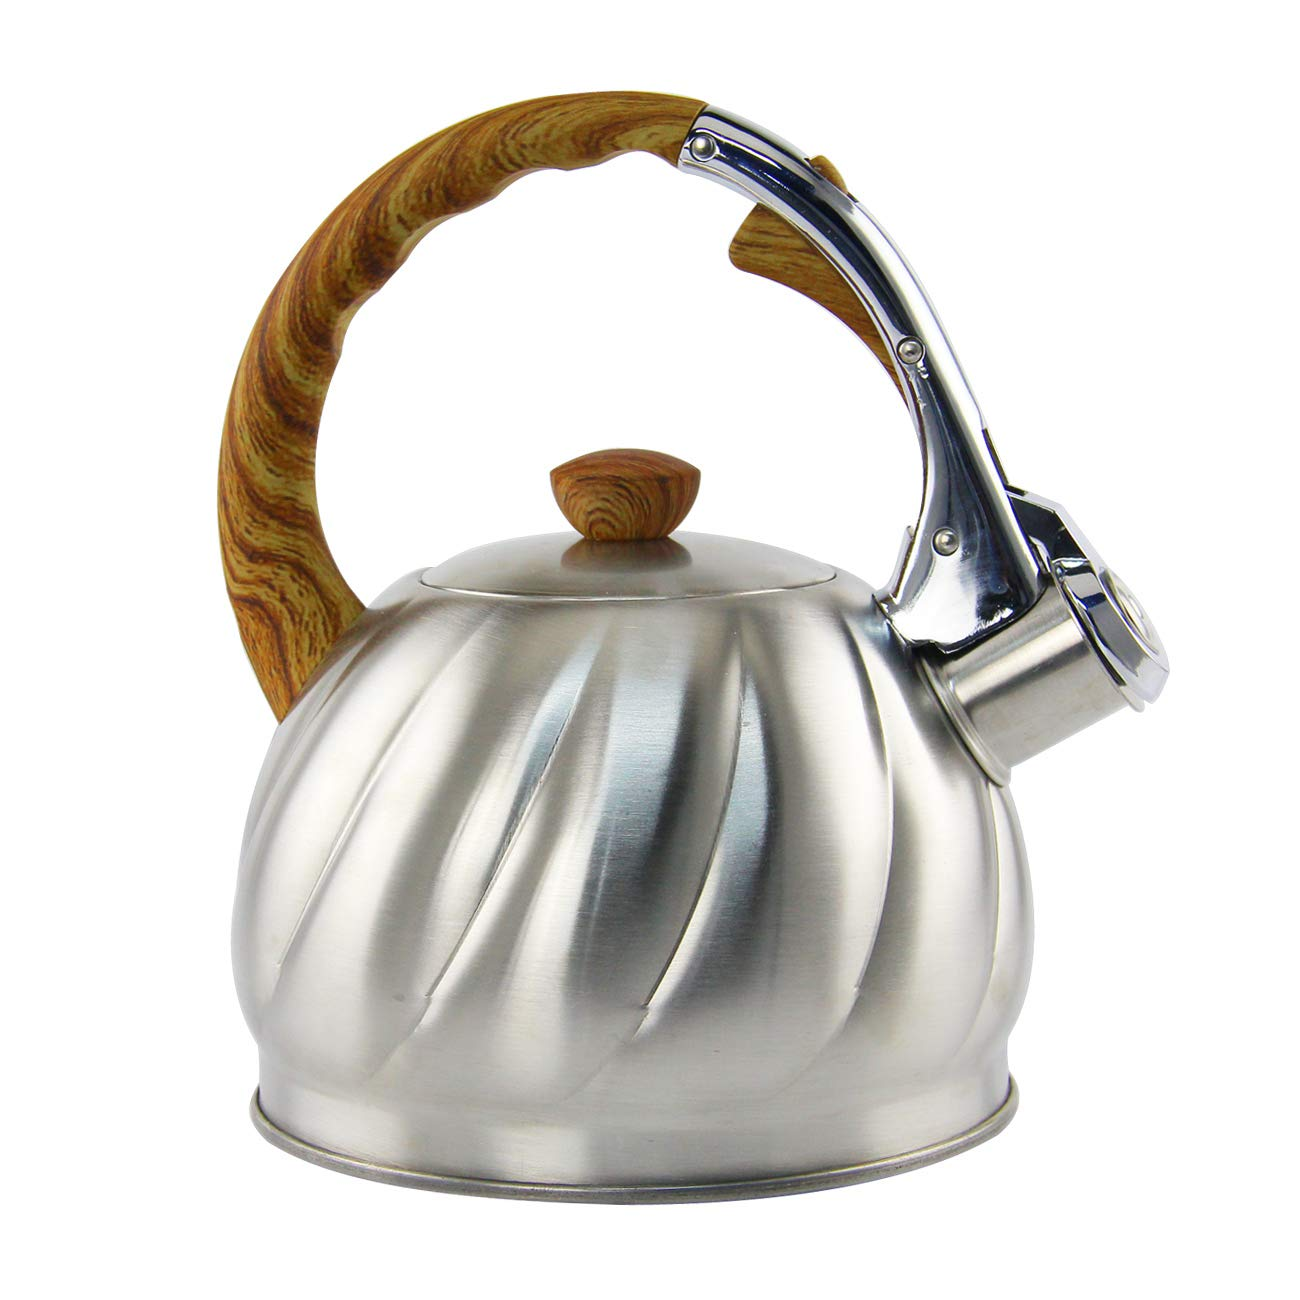 Riwendell Tea Kettle 2.1 Quart Whistling Stainless Steel Stove Top Teapot (GS-04571B-2.0L) by Riwendell